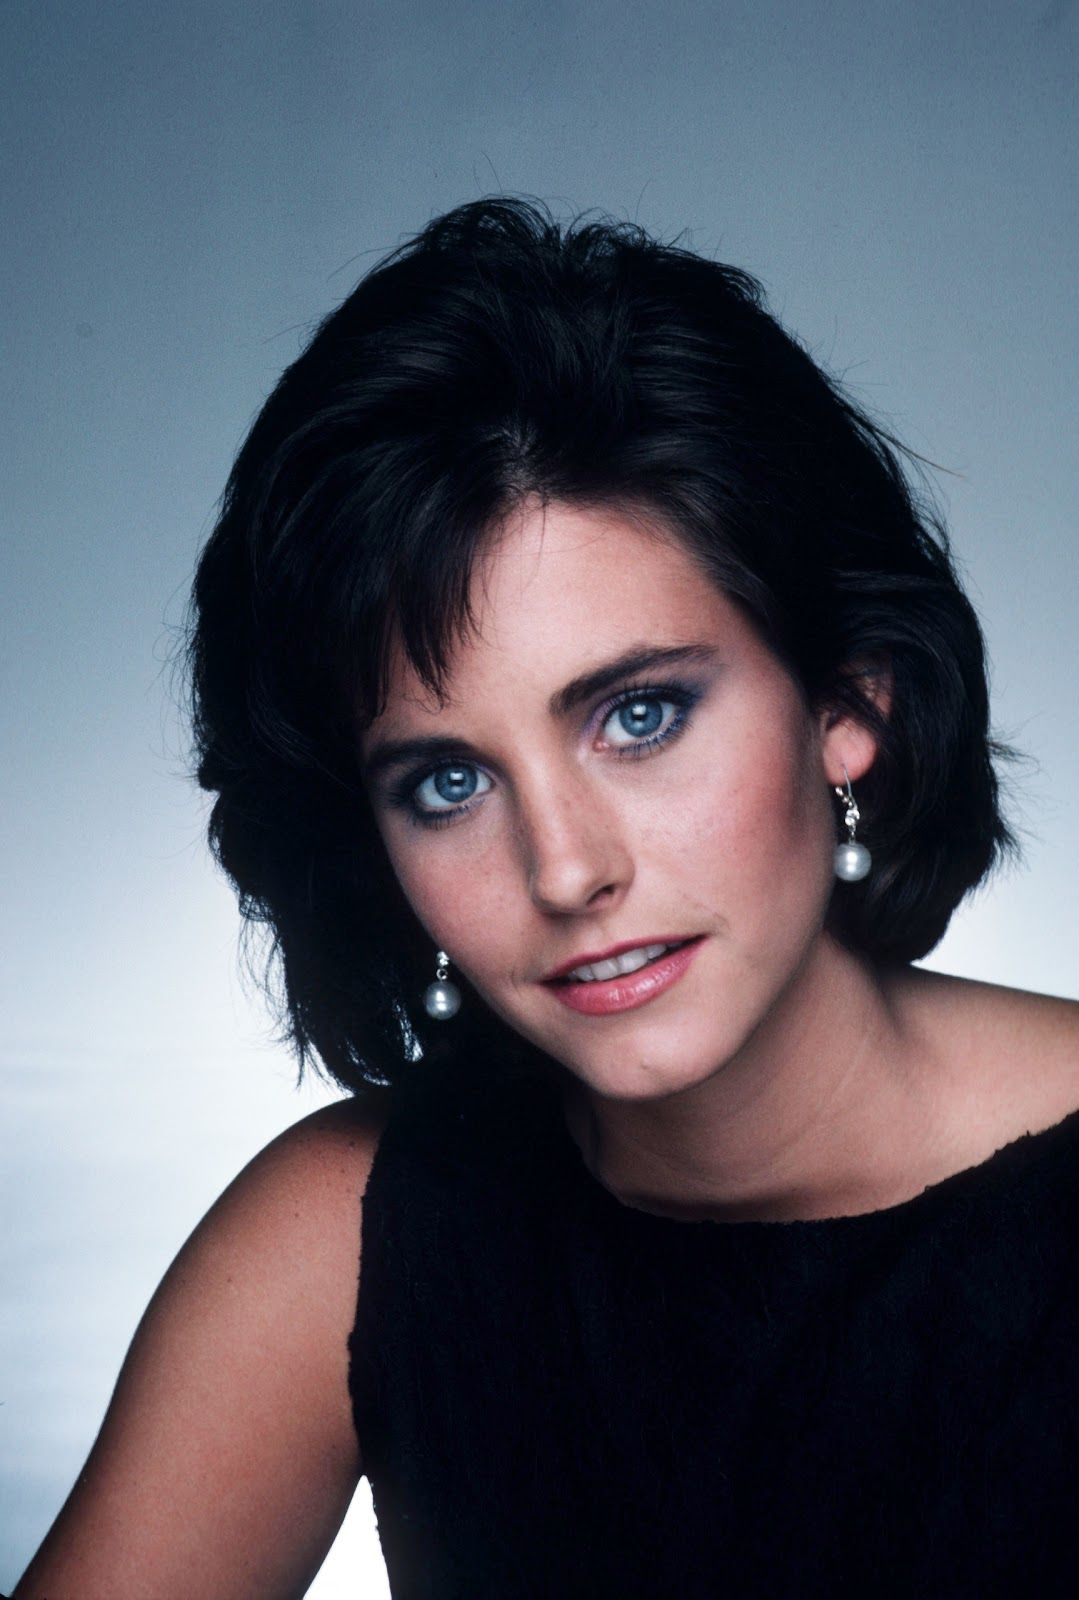 Courtney Cox (Courteney Cox) actress: photo, biography, personal life 2018 53